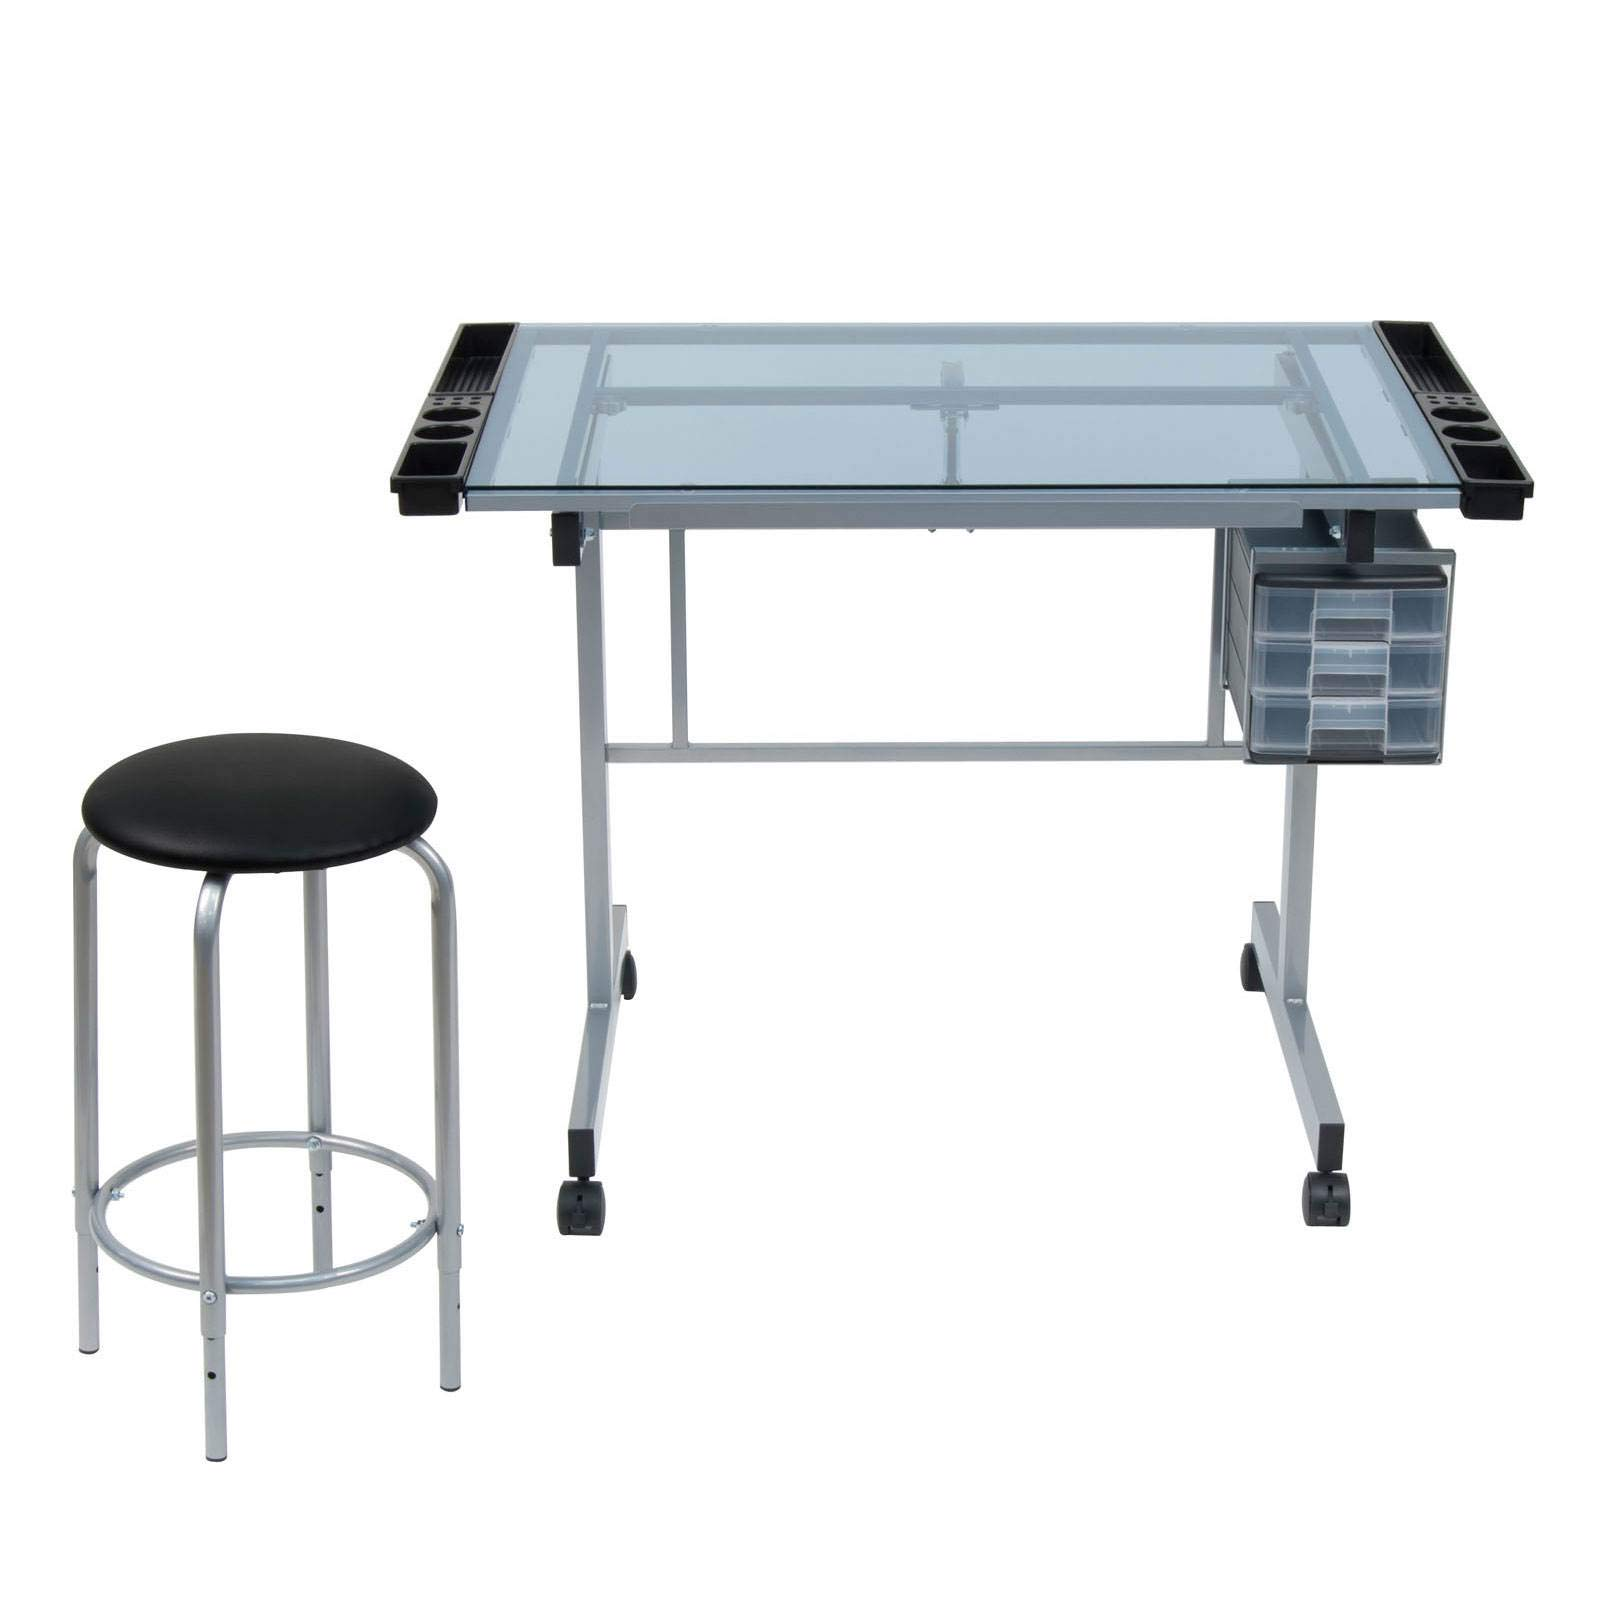 SD Studio Designs Studio Designs 2 Piece Vision Modern Metal Hobby, Craft, Drawing, Drafting Table, Mobile Desk with 40.75'' W x 25.75'' D Angle Adjustable Top in Silver/Blue Glass by SD STUDIO DESIGNS